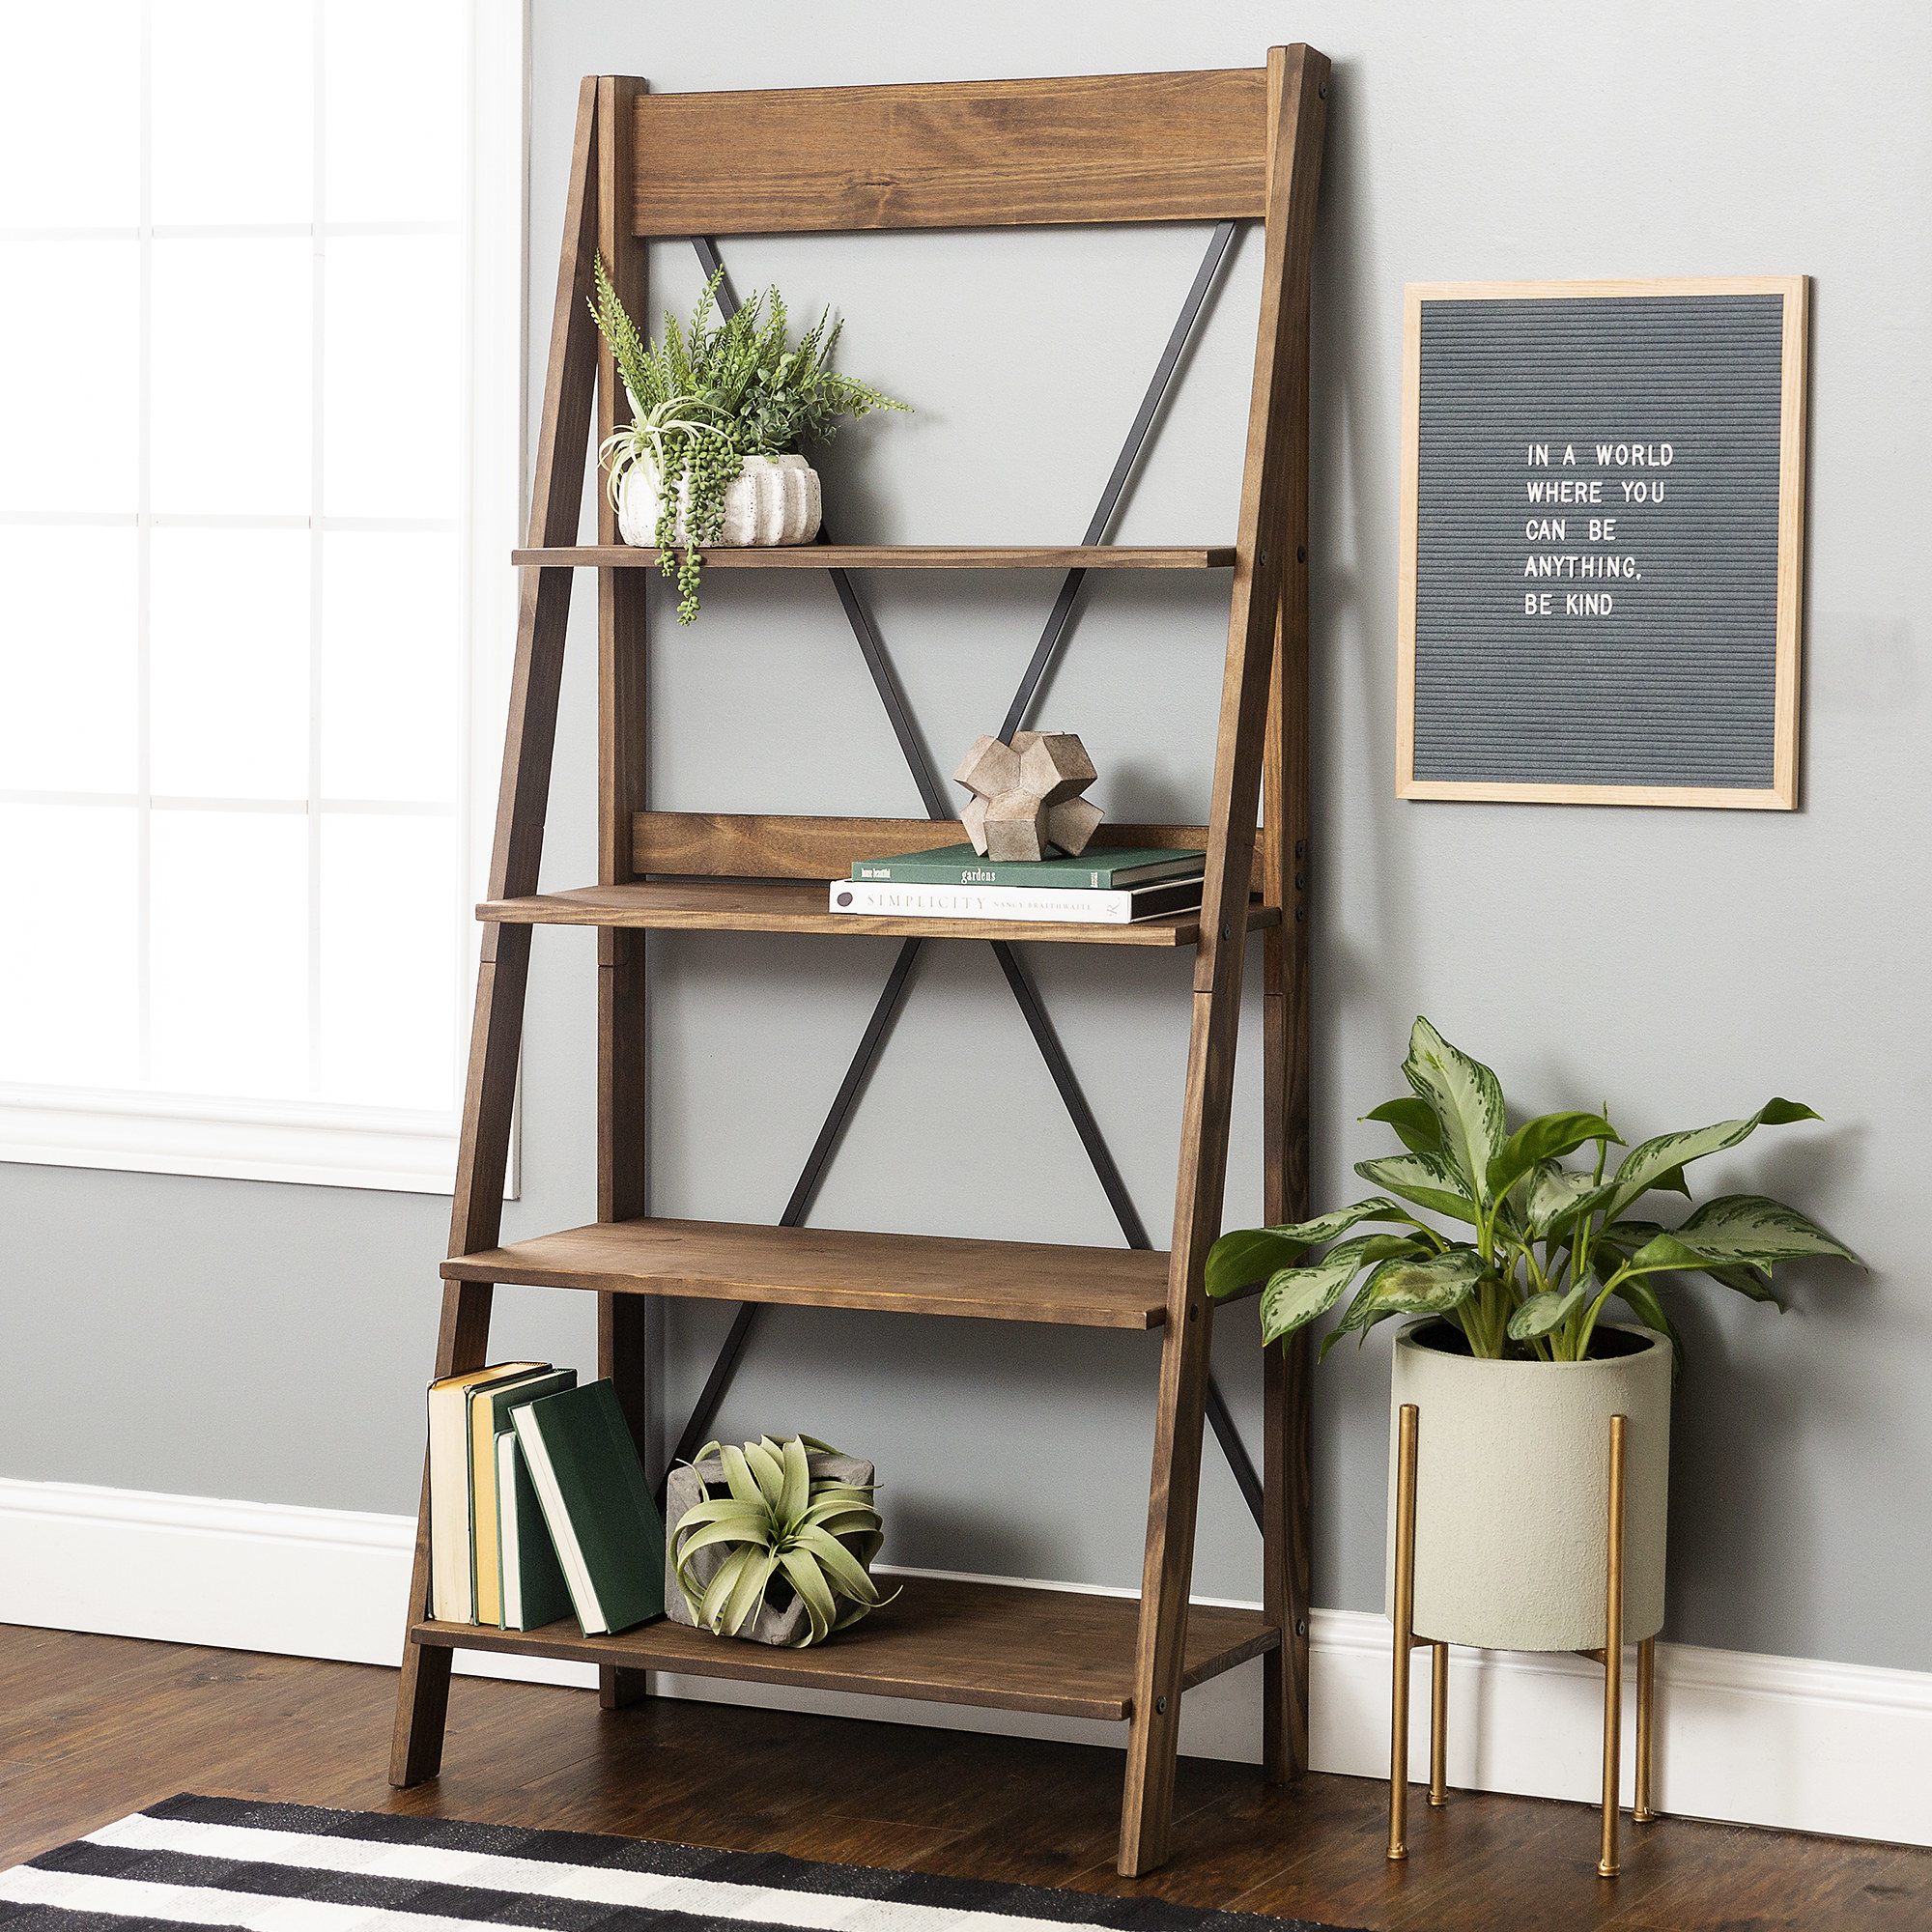 The bookshelf with four shelves, which get narrower as they get higher up